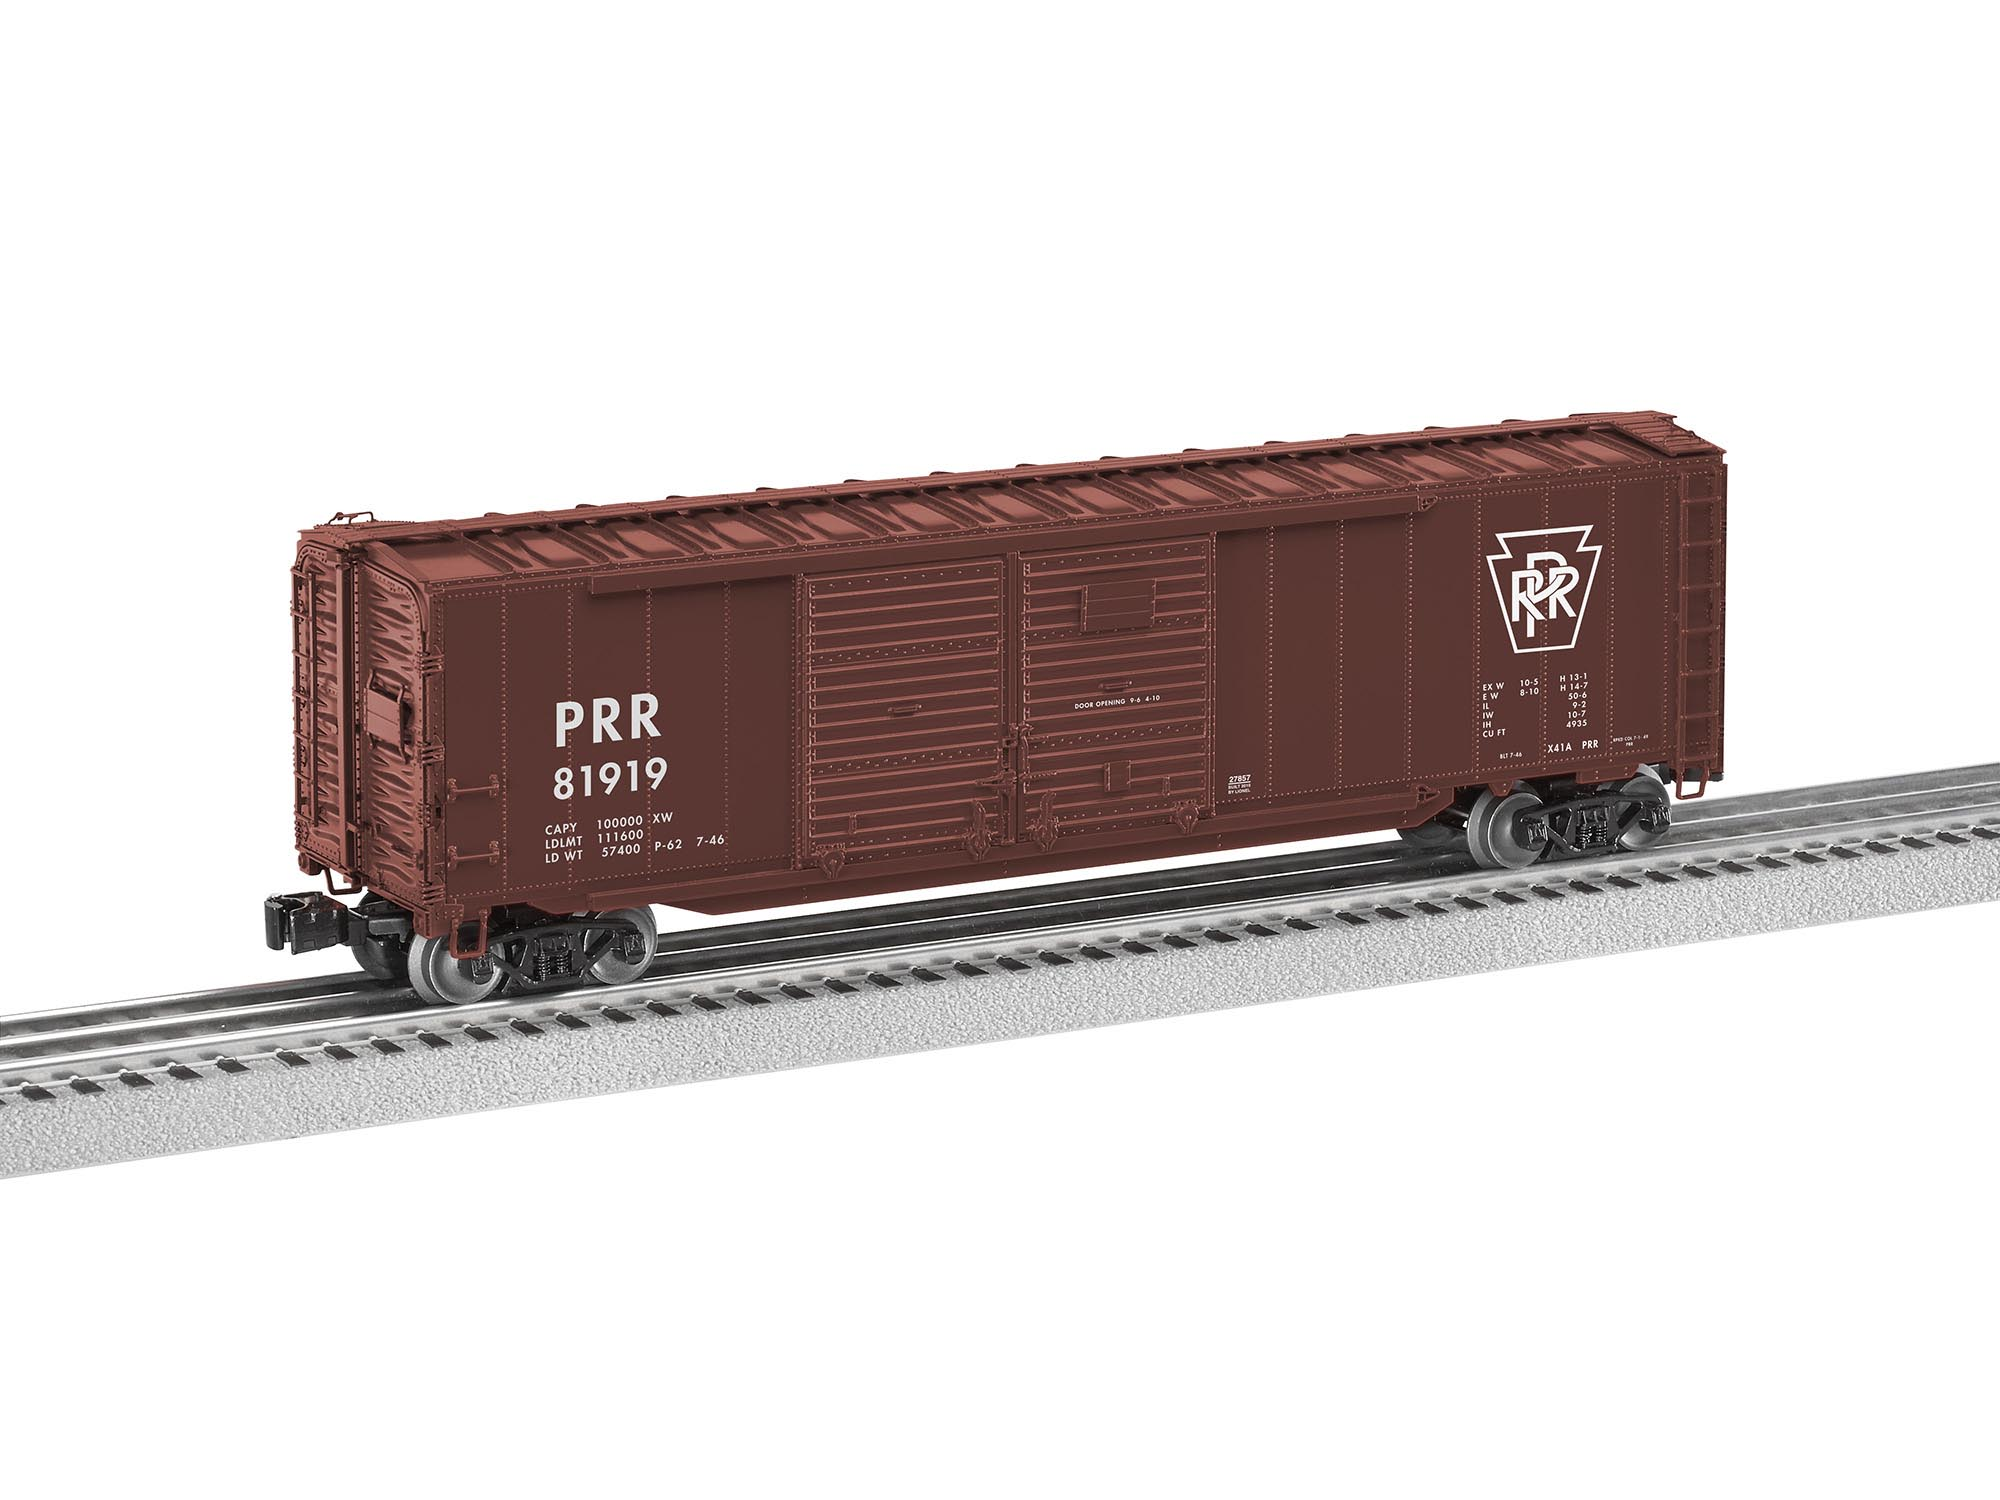 6-27857 PENNSYLVANIA SCALE 50' BOXCAR W/END DOORS #81919